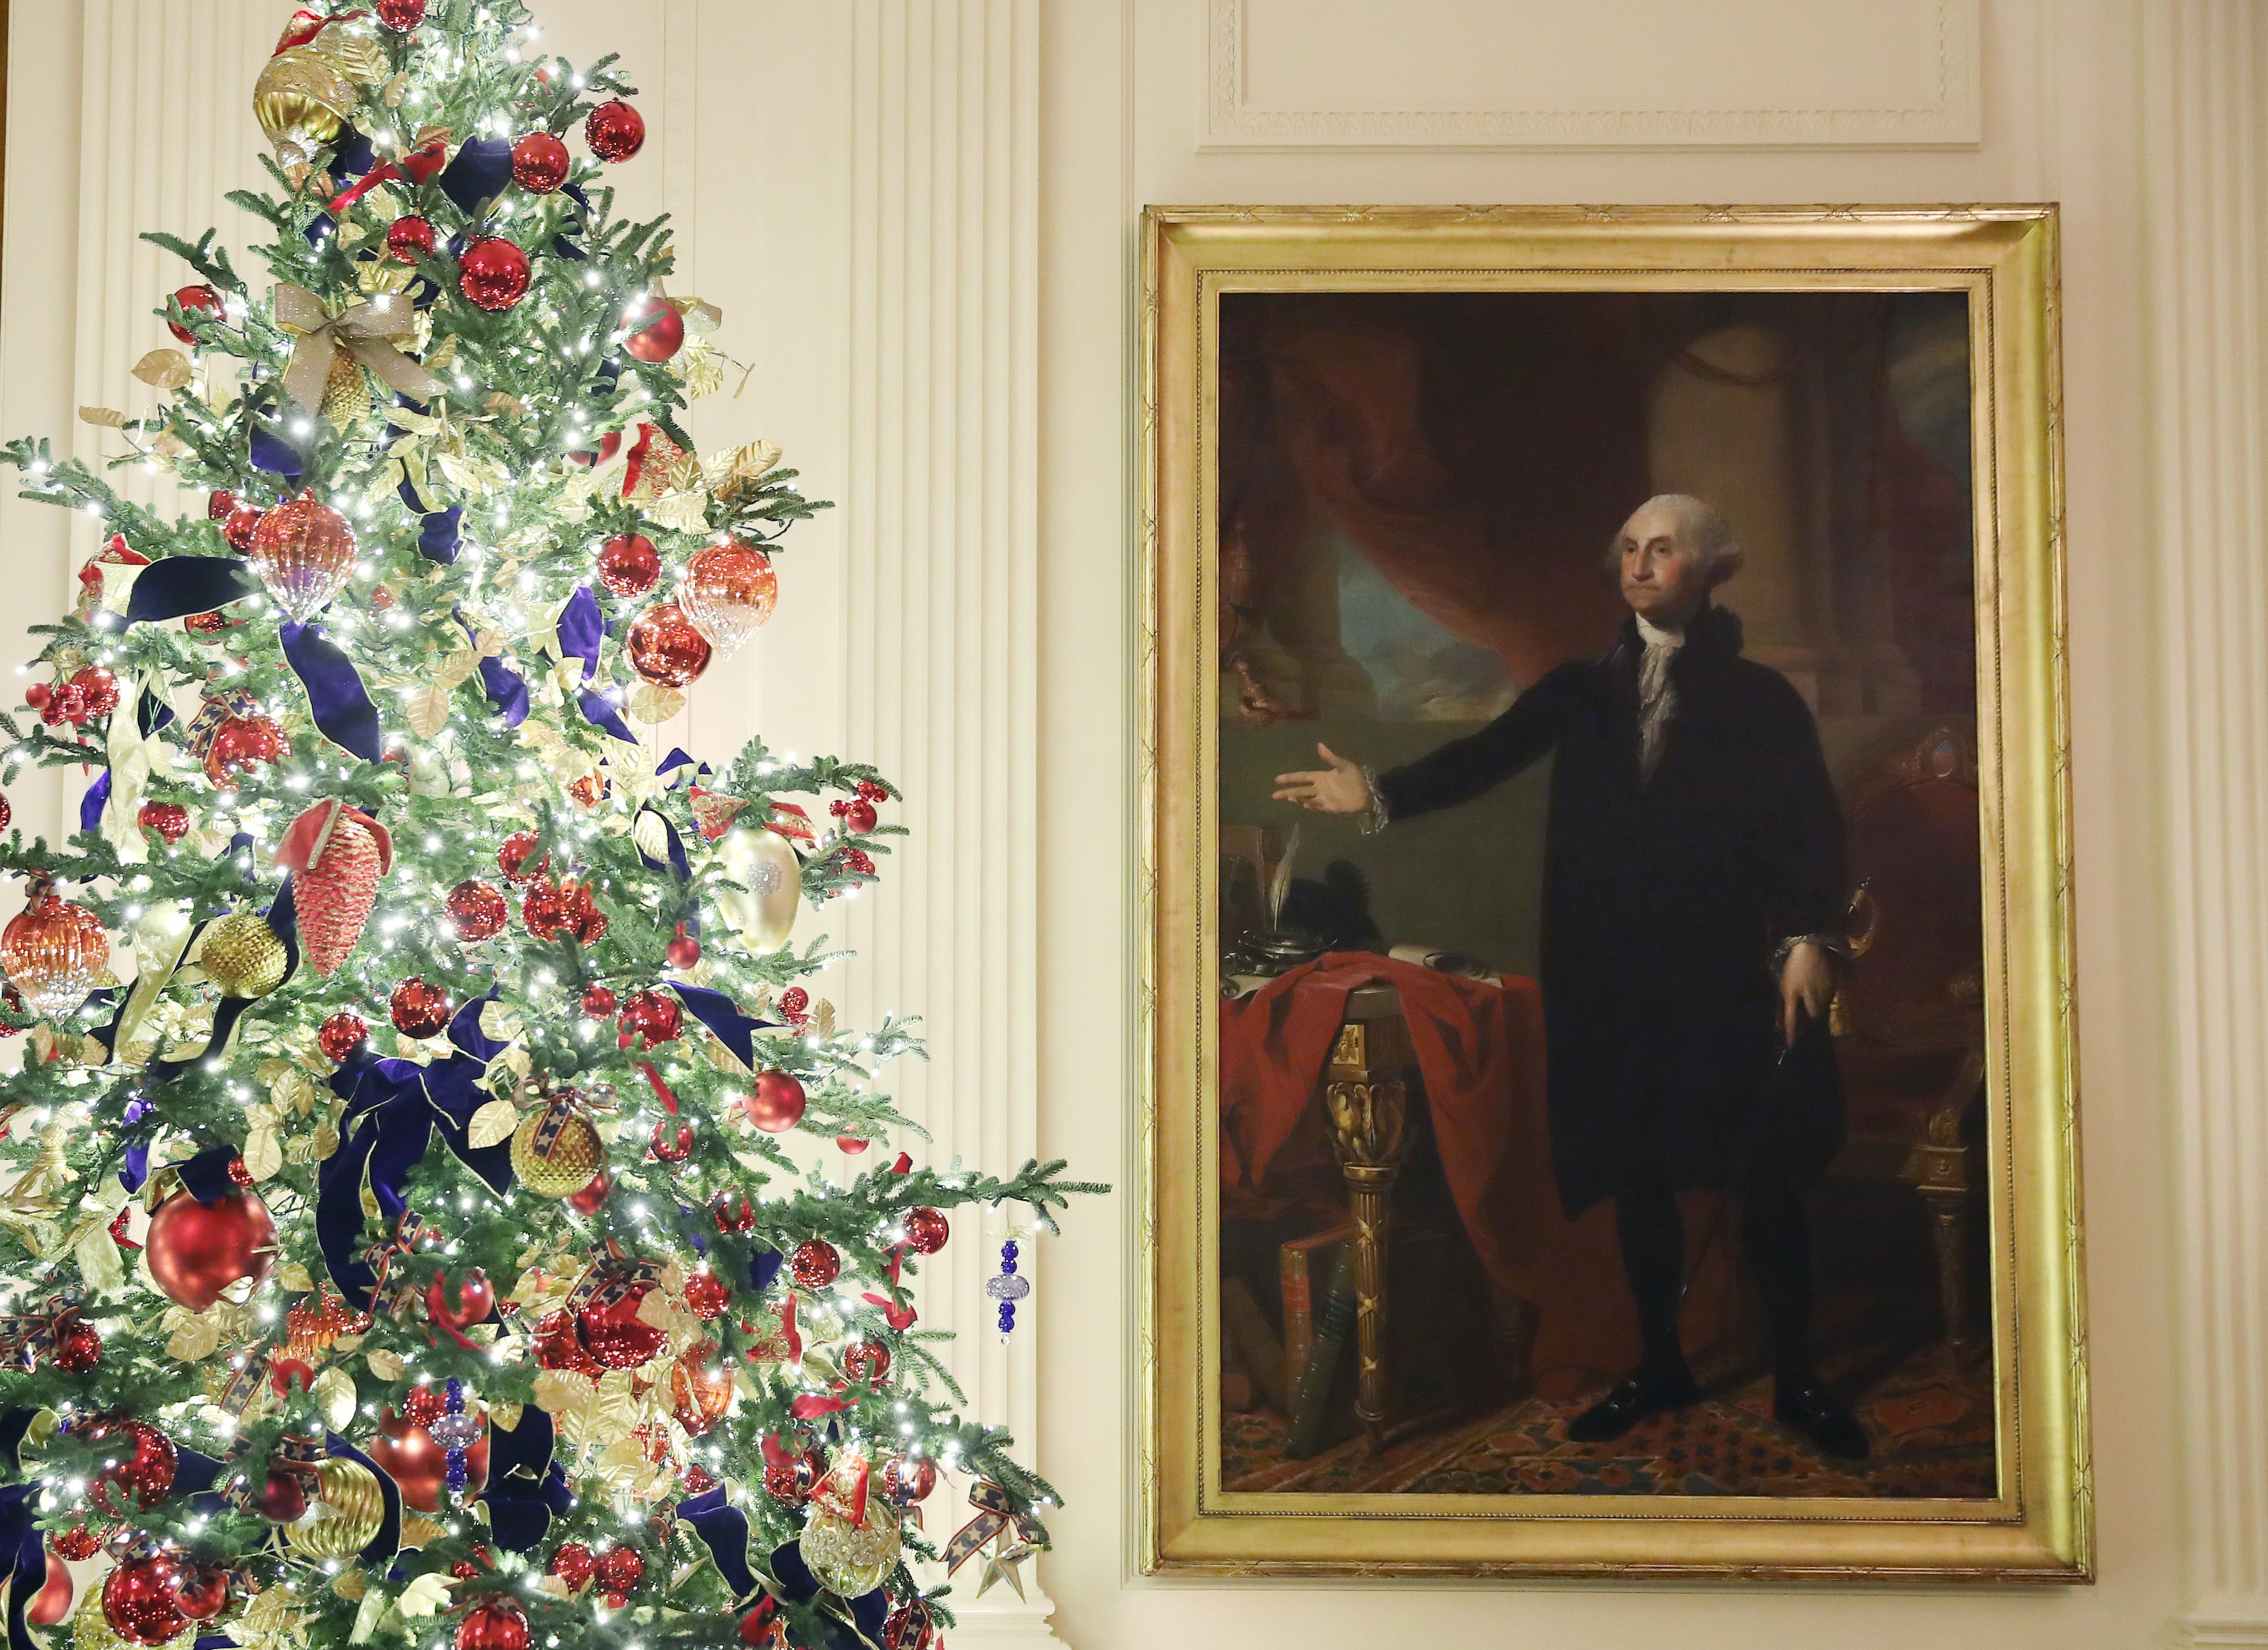 The White House S 2019 Christmas Decorations In Pictures White House Christmas White House Christmas Decorations White House Christmas Tree